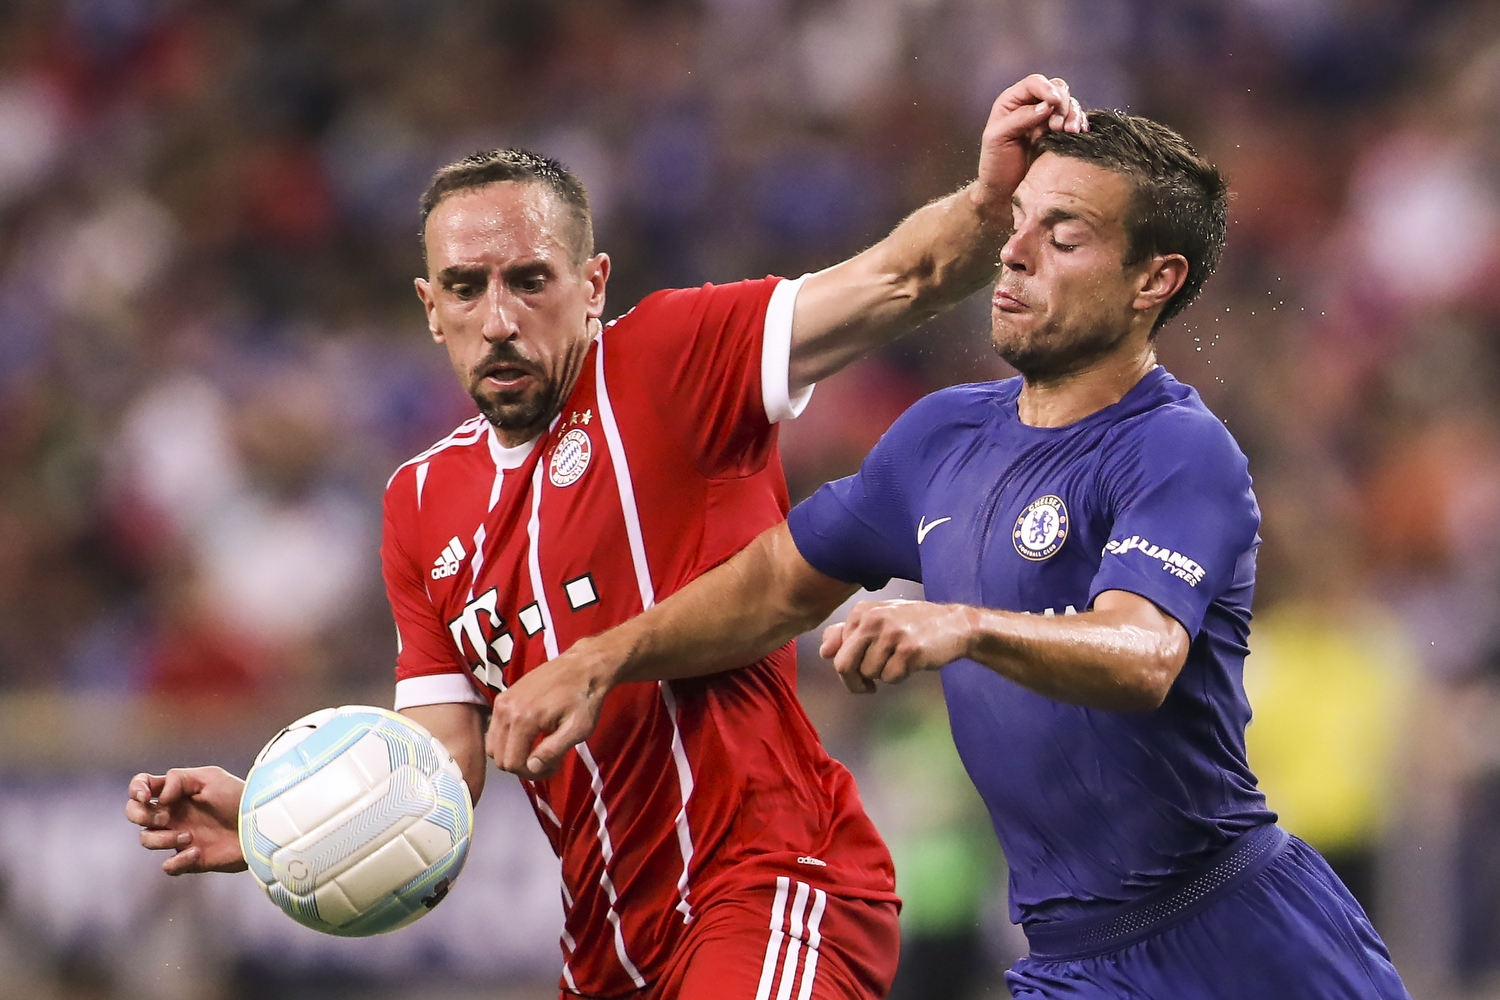 Soccer Football - Chelsea vs Bayern Munich - International Champions Cup - Singapore - July 25, 2017 Bayern Munich's Franck Ribery in action against Chelsea's Cesar Azpilicueta REUTERS/Yong Teck Lim